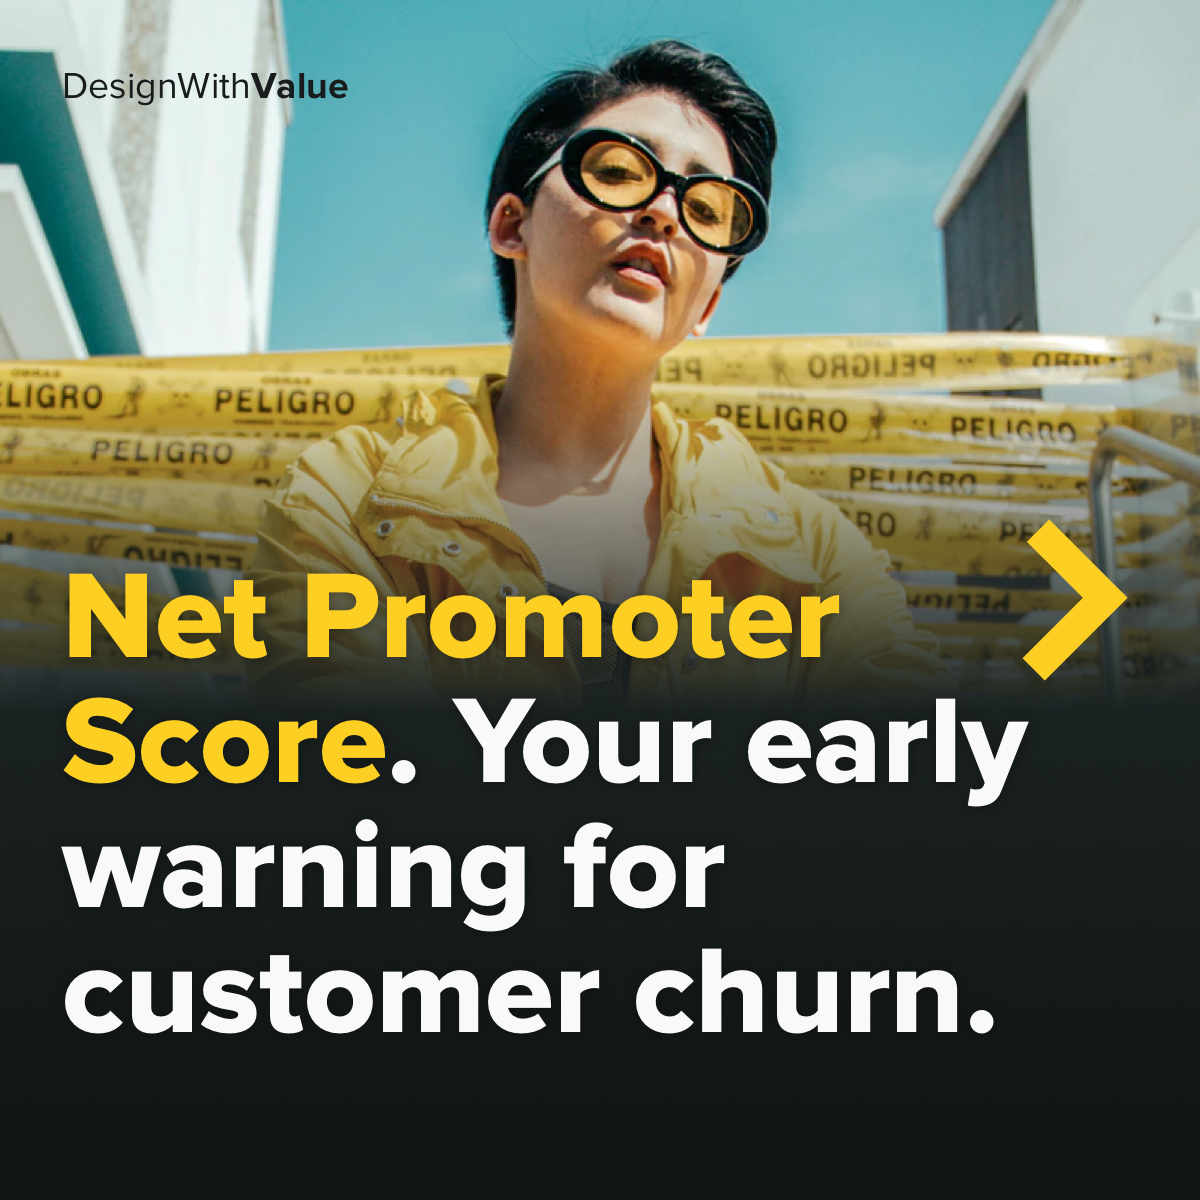 Net promoter score. Your early warning for customer churn.